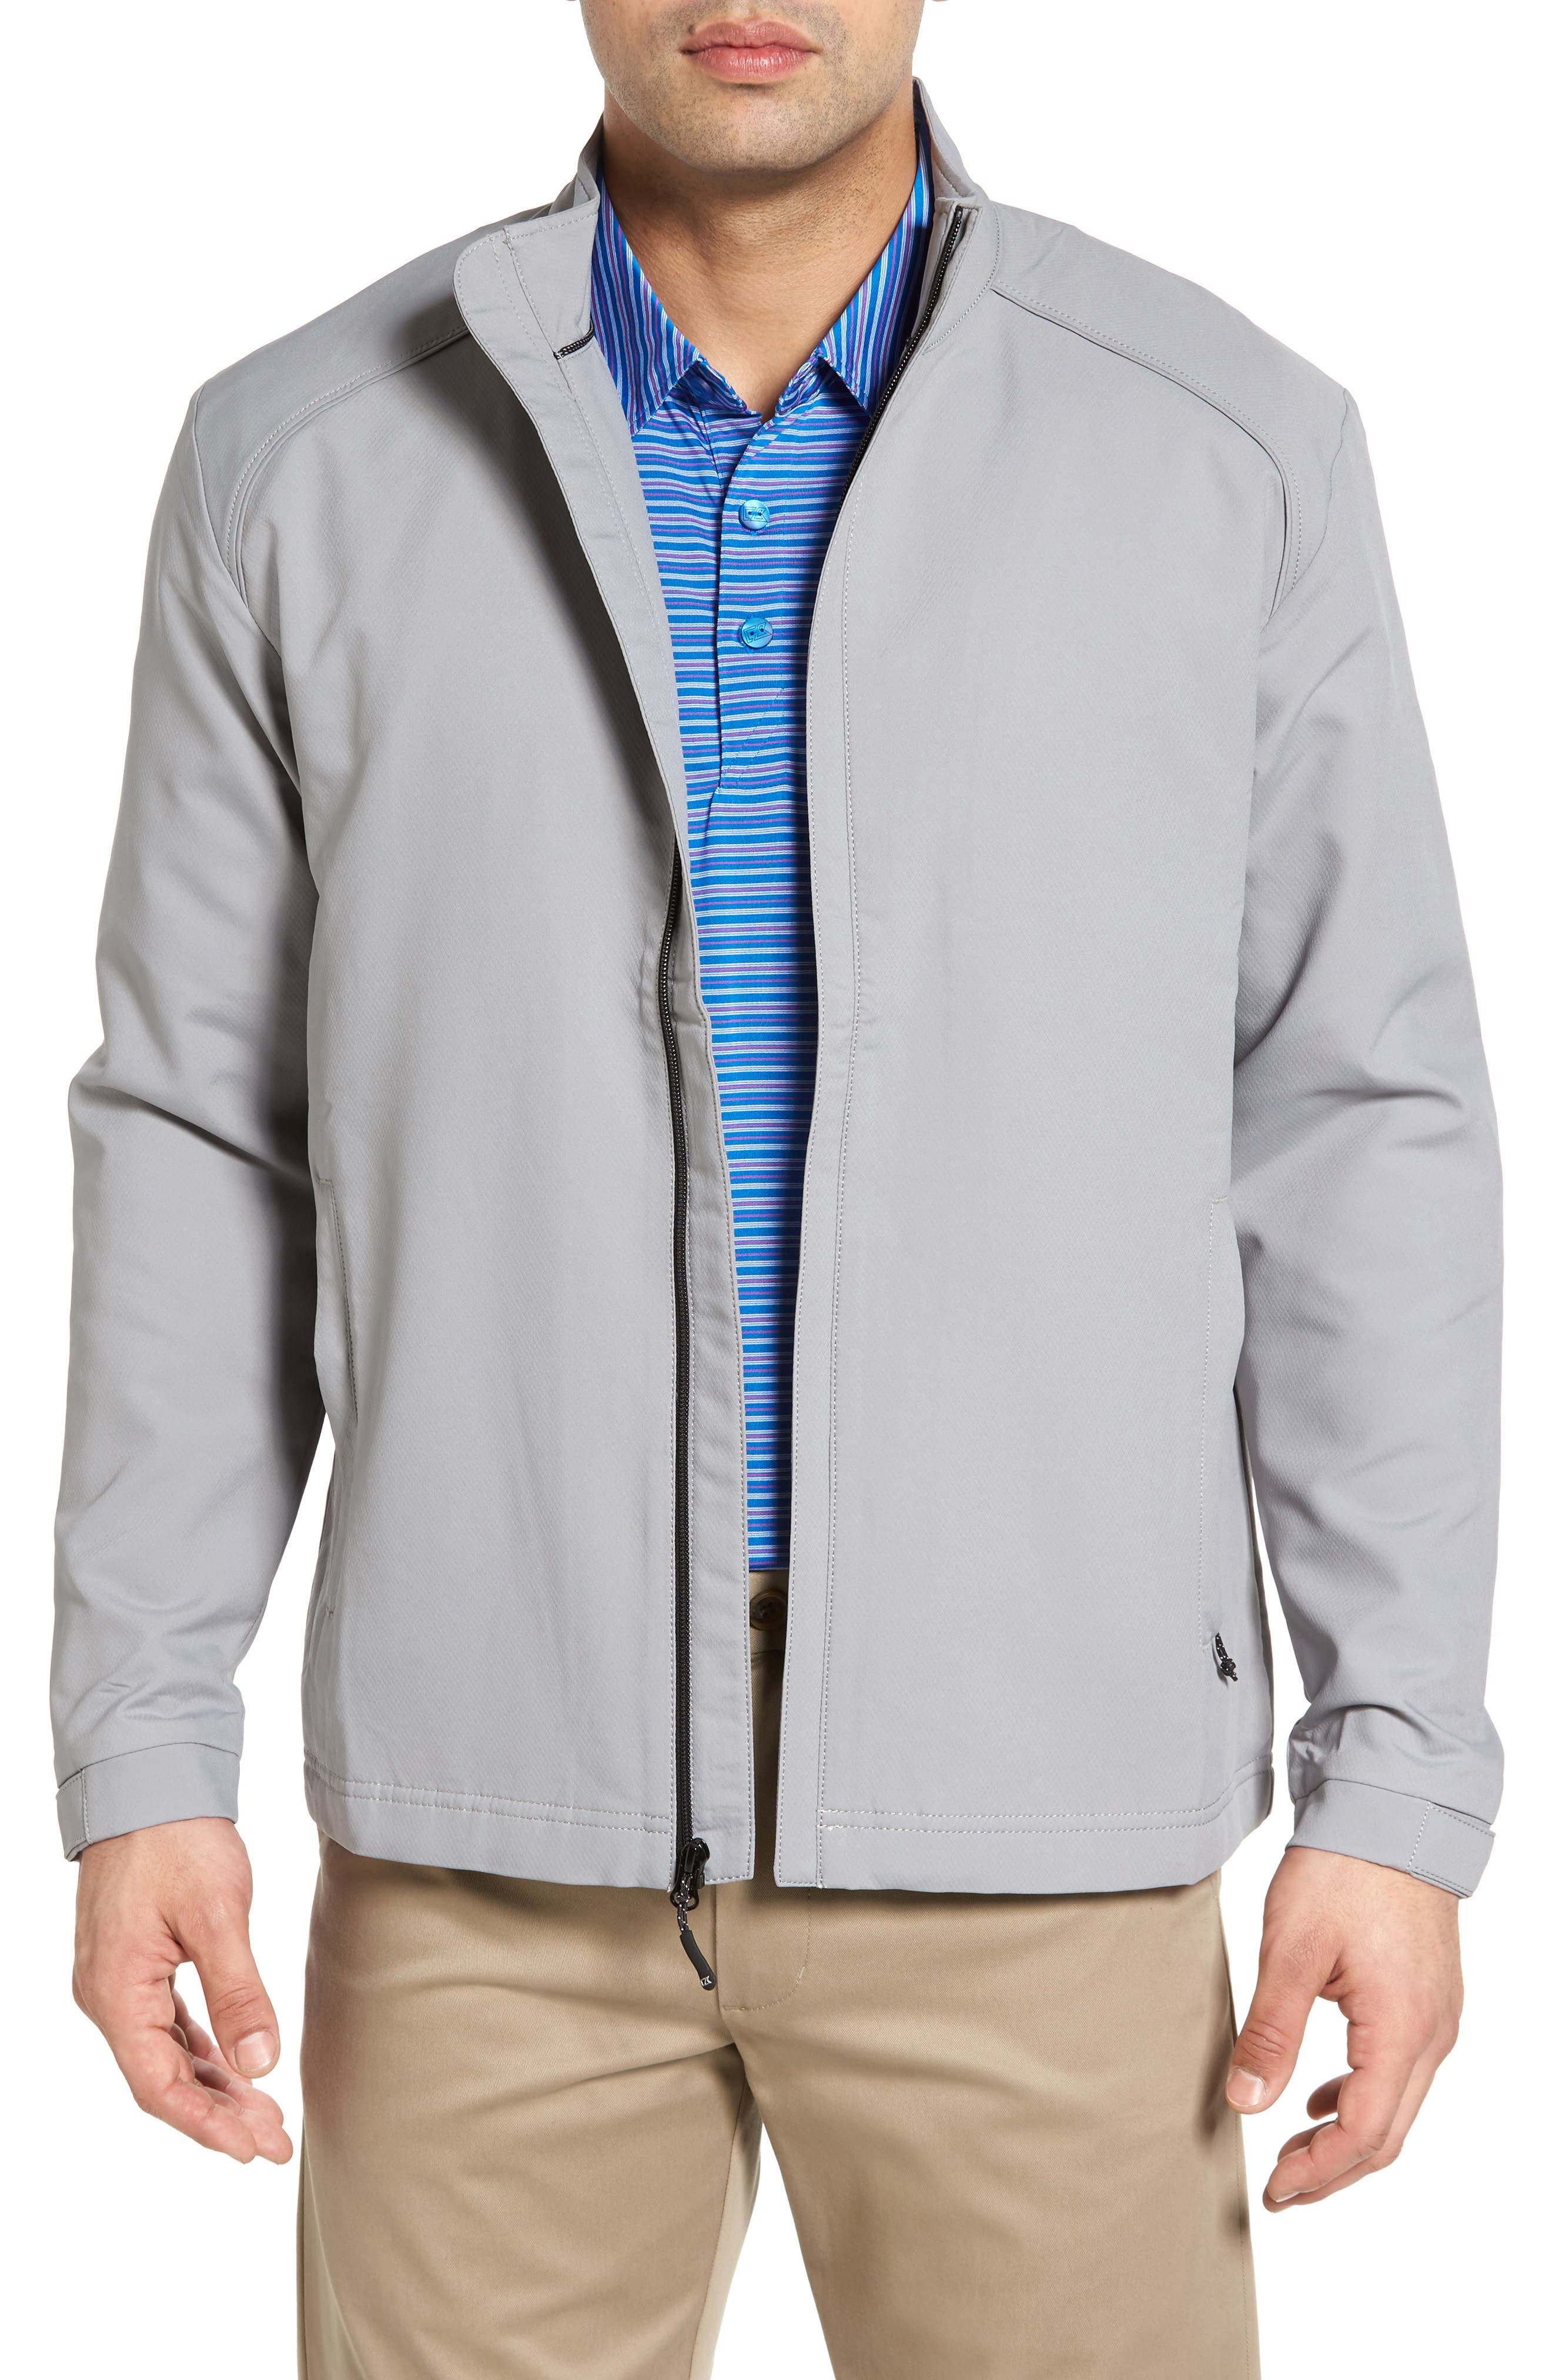 A breathable, fully-lined mock-neck jacket is crafted from lightweight WeatherTec fabric that features a versatile, wind- and water-resistant finish. Hook-and-loop cuffs seal out the chill, while zip pockets offer safe storage for your keys, phone or wallet. Style Name: Cutter & Buck \\\'Blakely\\\' Weathertec Wind & Water Resistant Full Zip Jacket. Style Number: 876406. Available in stores.